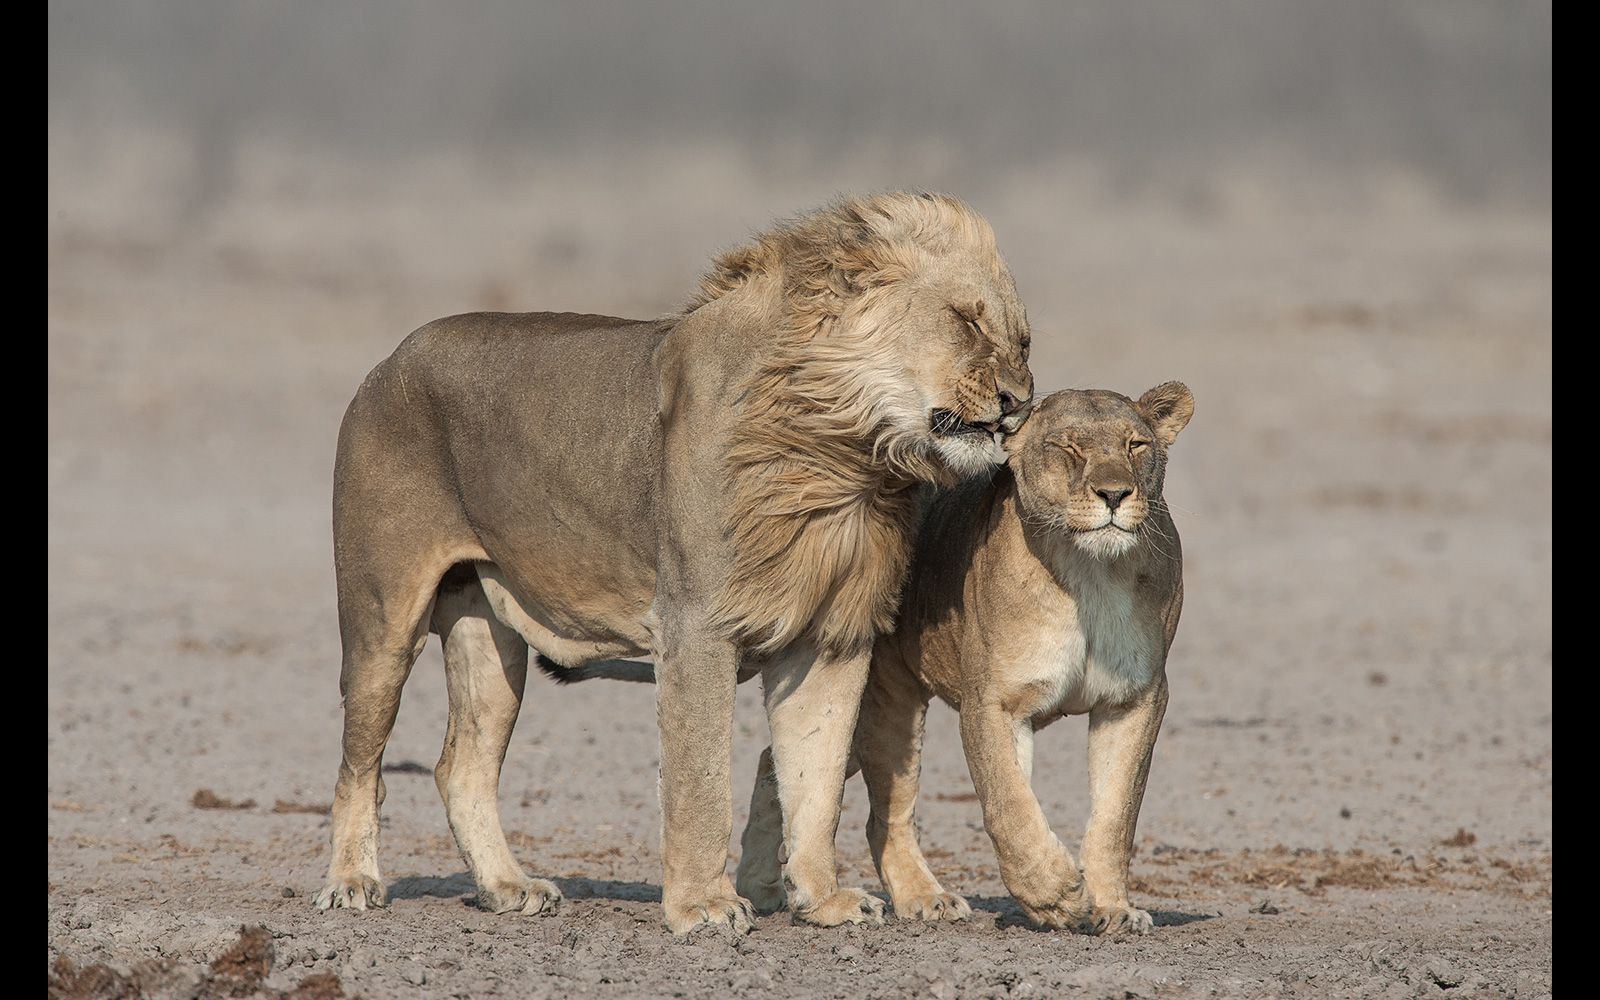 A whispering lion couple in strong wind in Etosha National Park, Namibia © Johan J. Botha